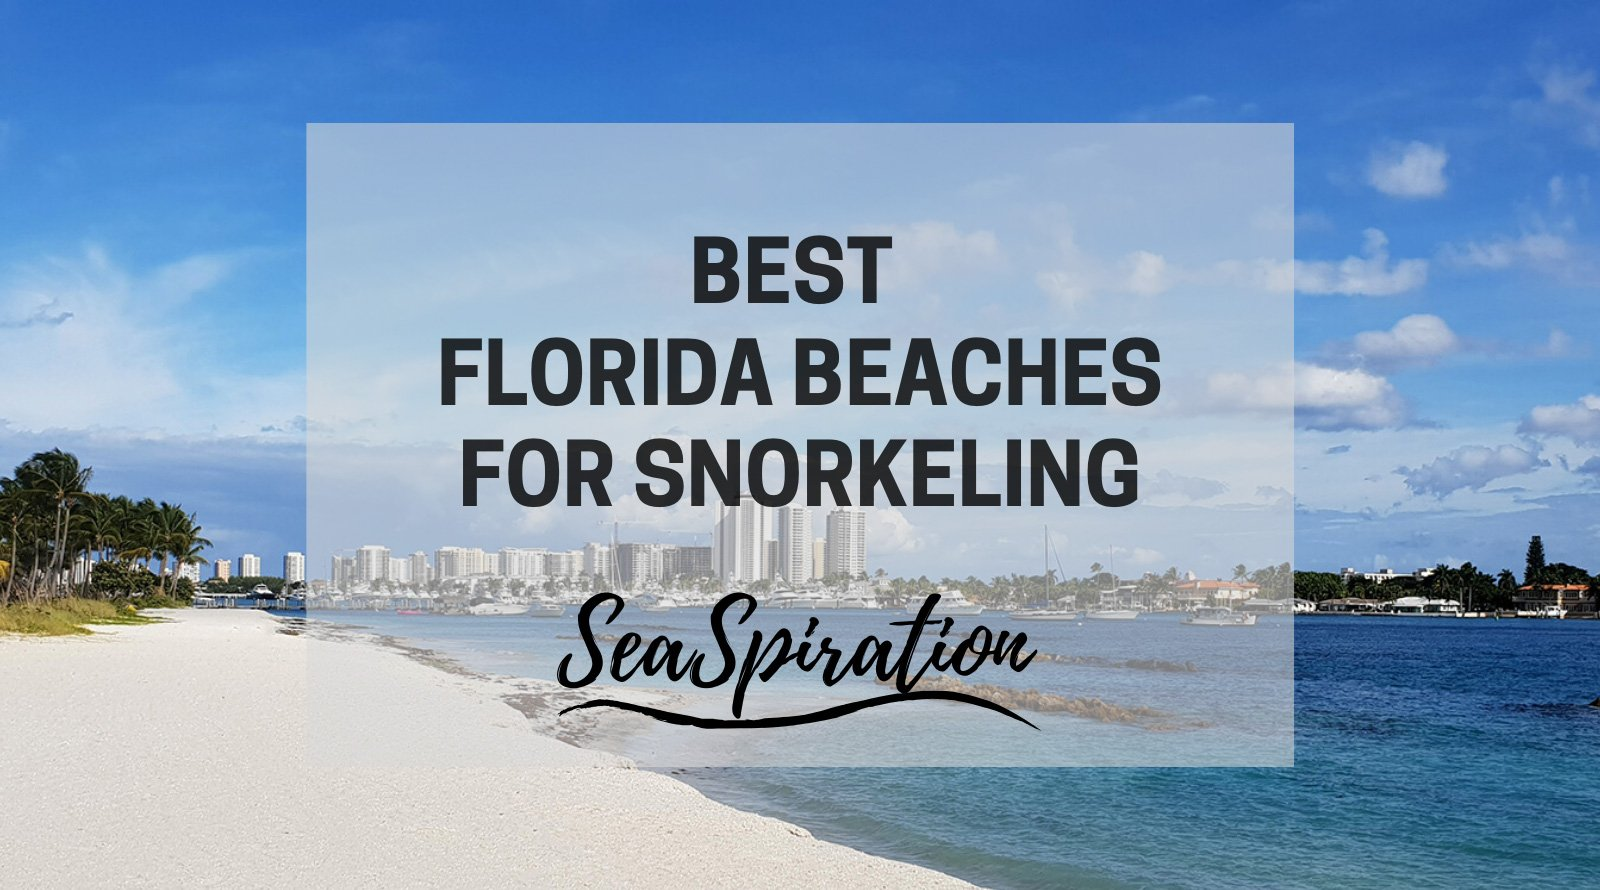 Best Florida beaches for snorkeling